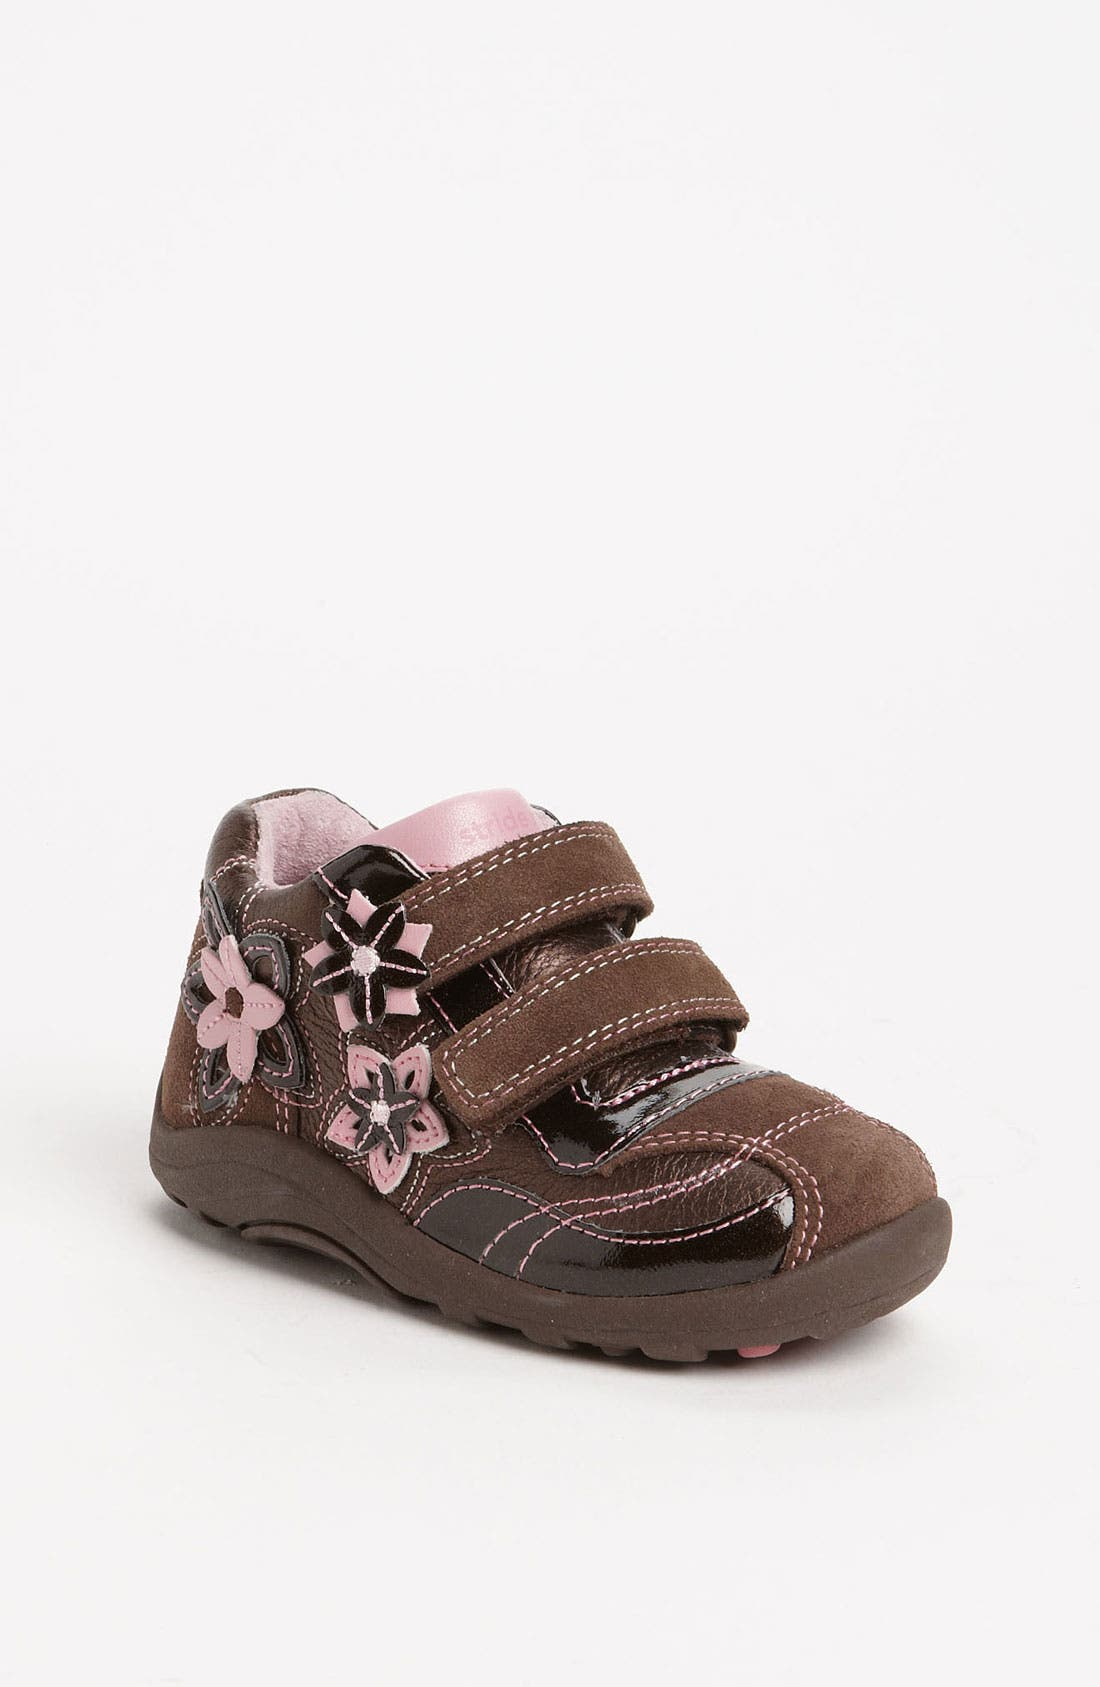 Main Image - Stride Rite 'Darling Dora' Sneaker (Baby, Walker & Toddler)